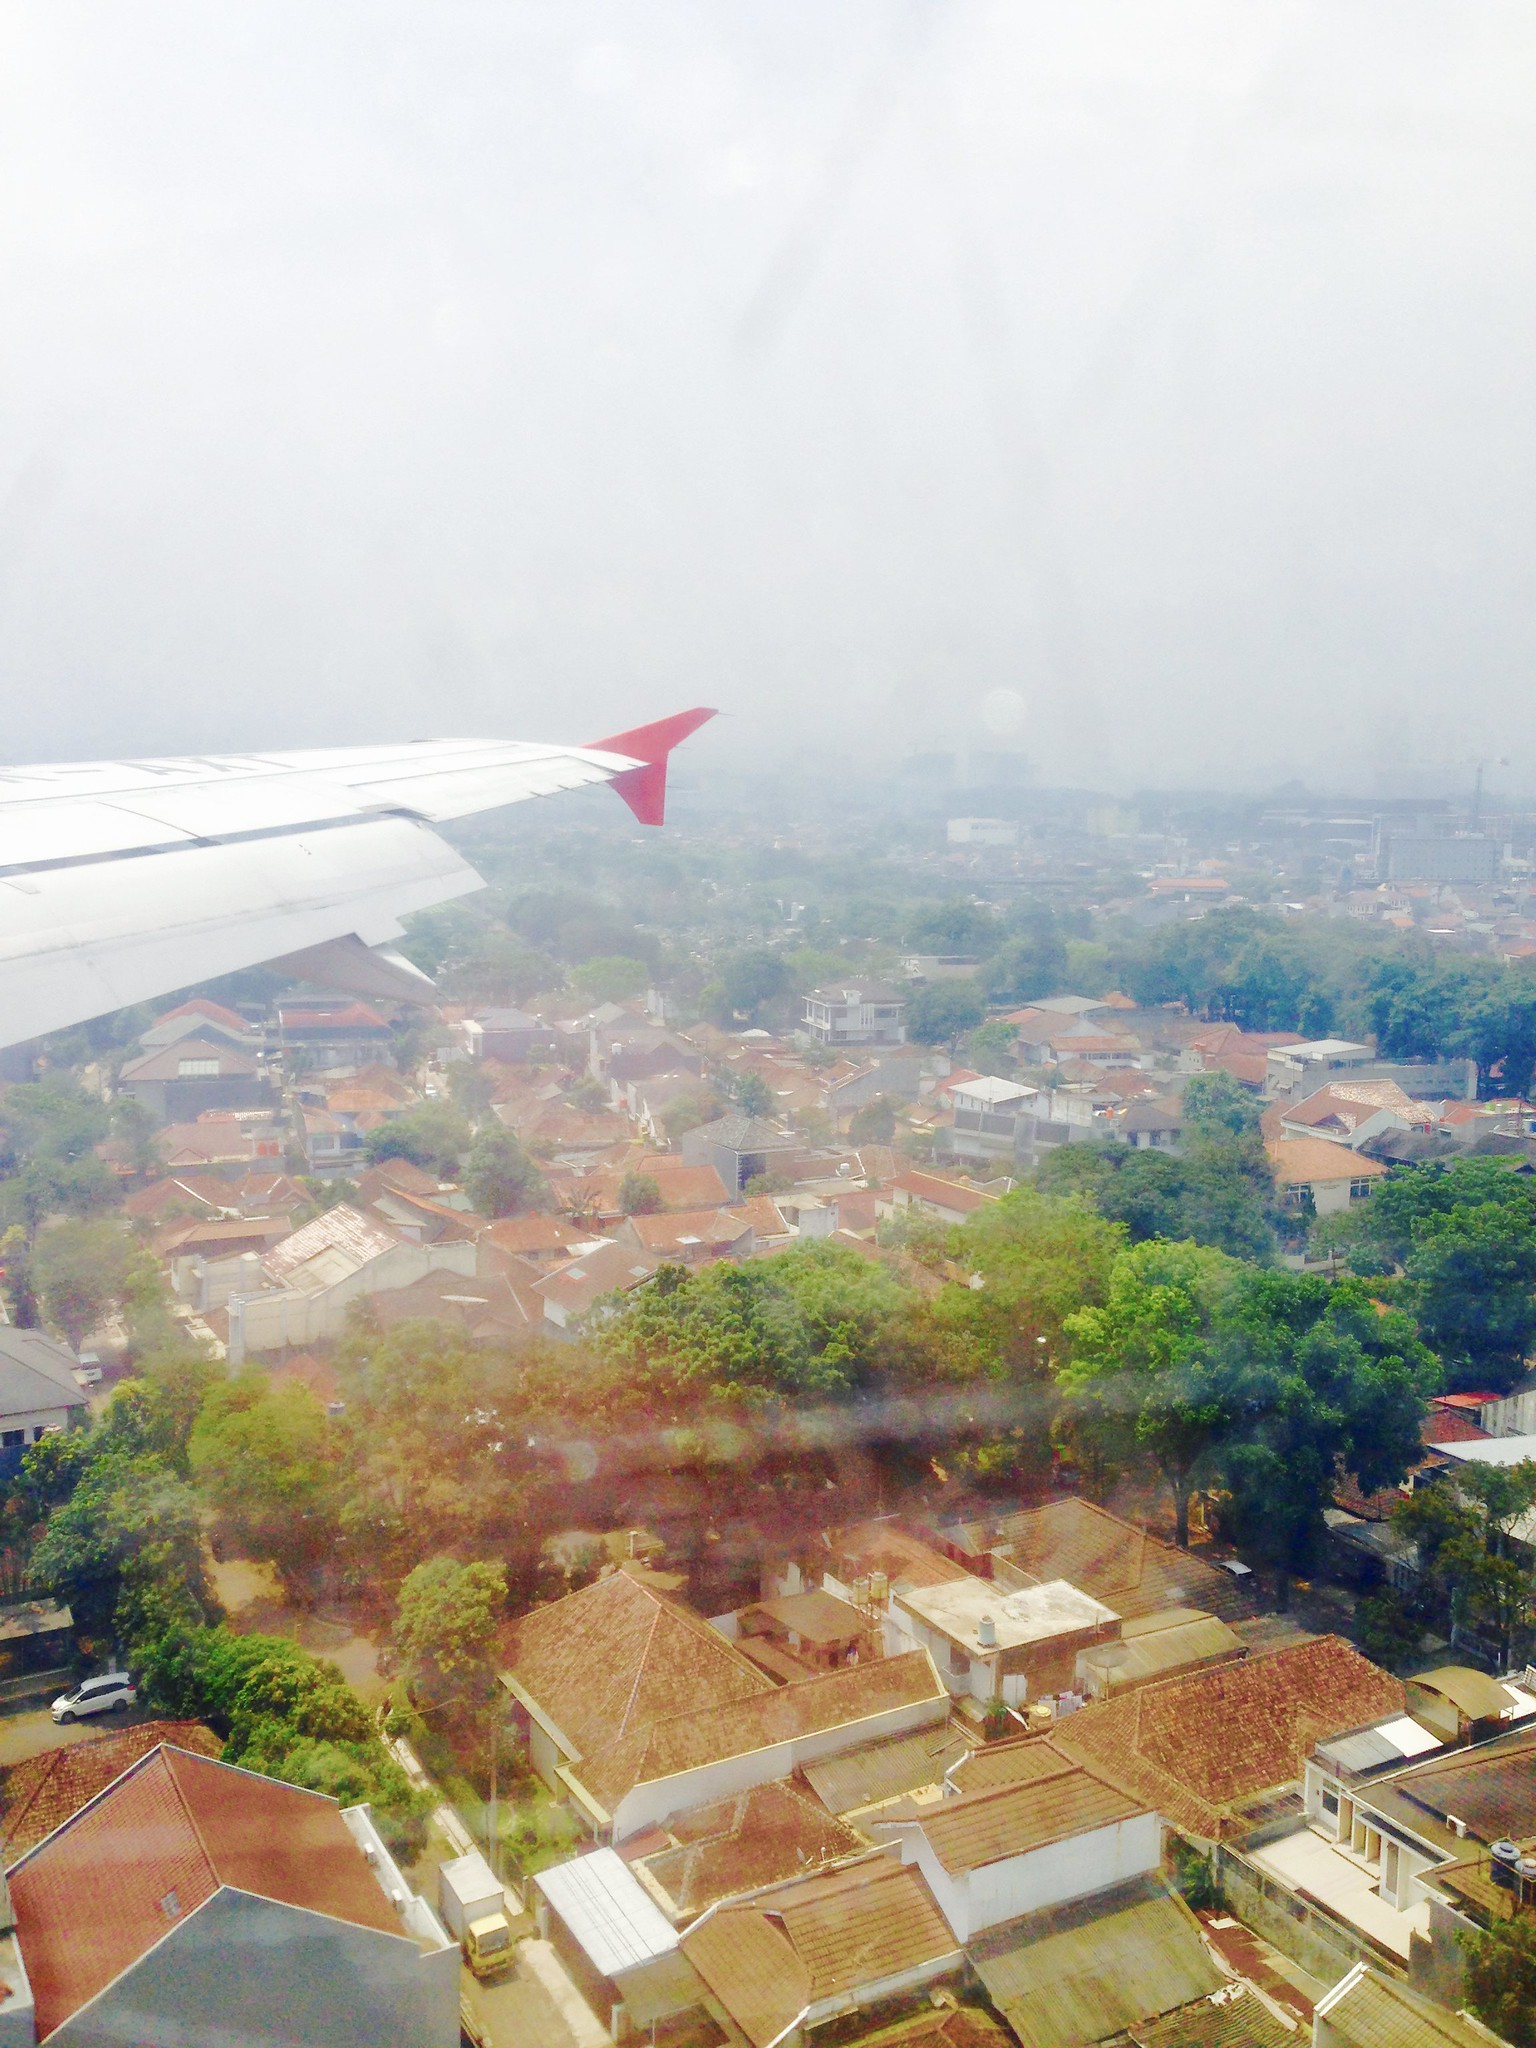 Sticking the Landing, Bandung